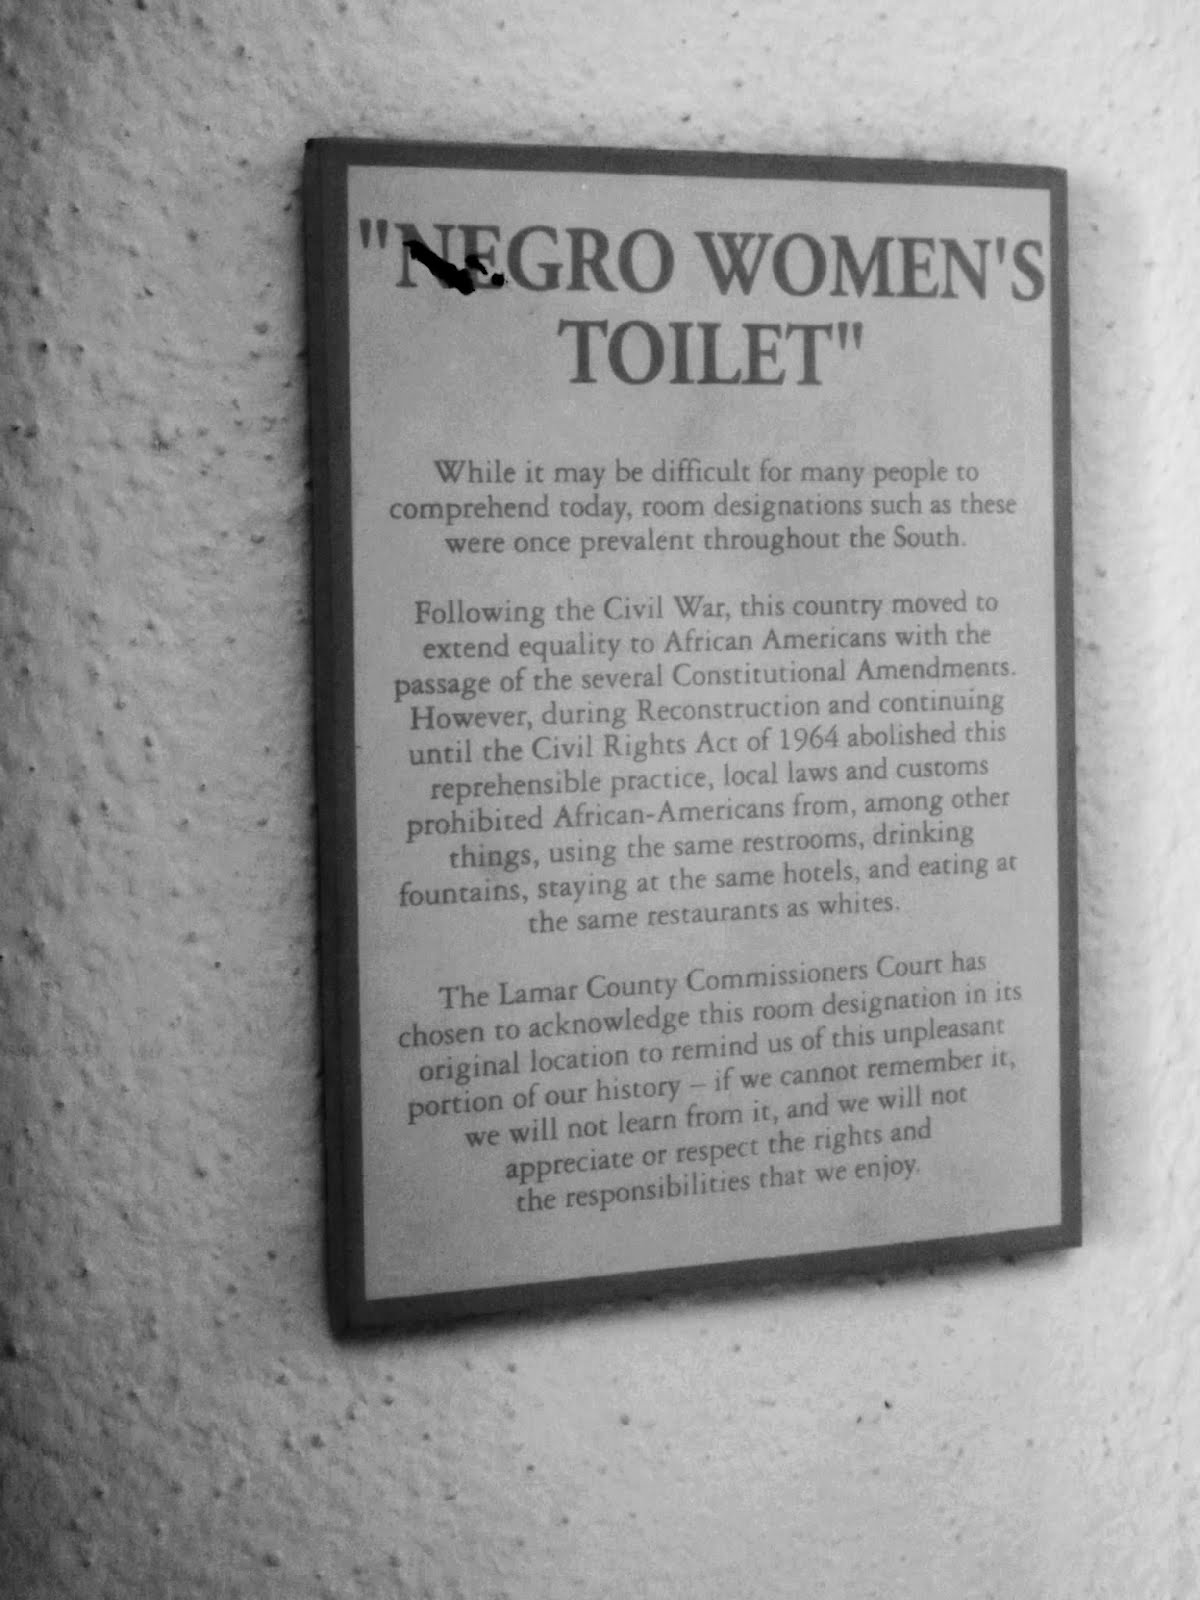 Bathroom Sign Location paris texas, jim crow, negro toilet signs, cherished memories